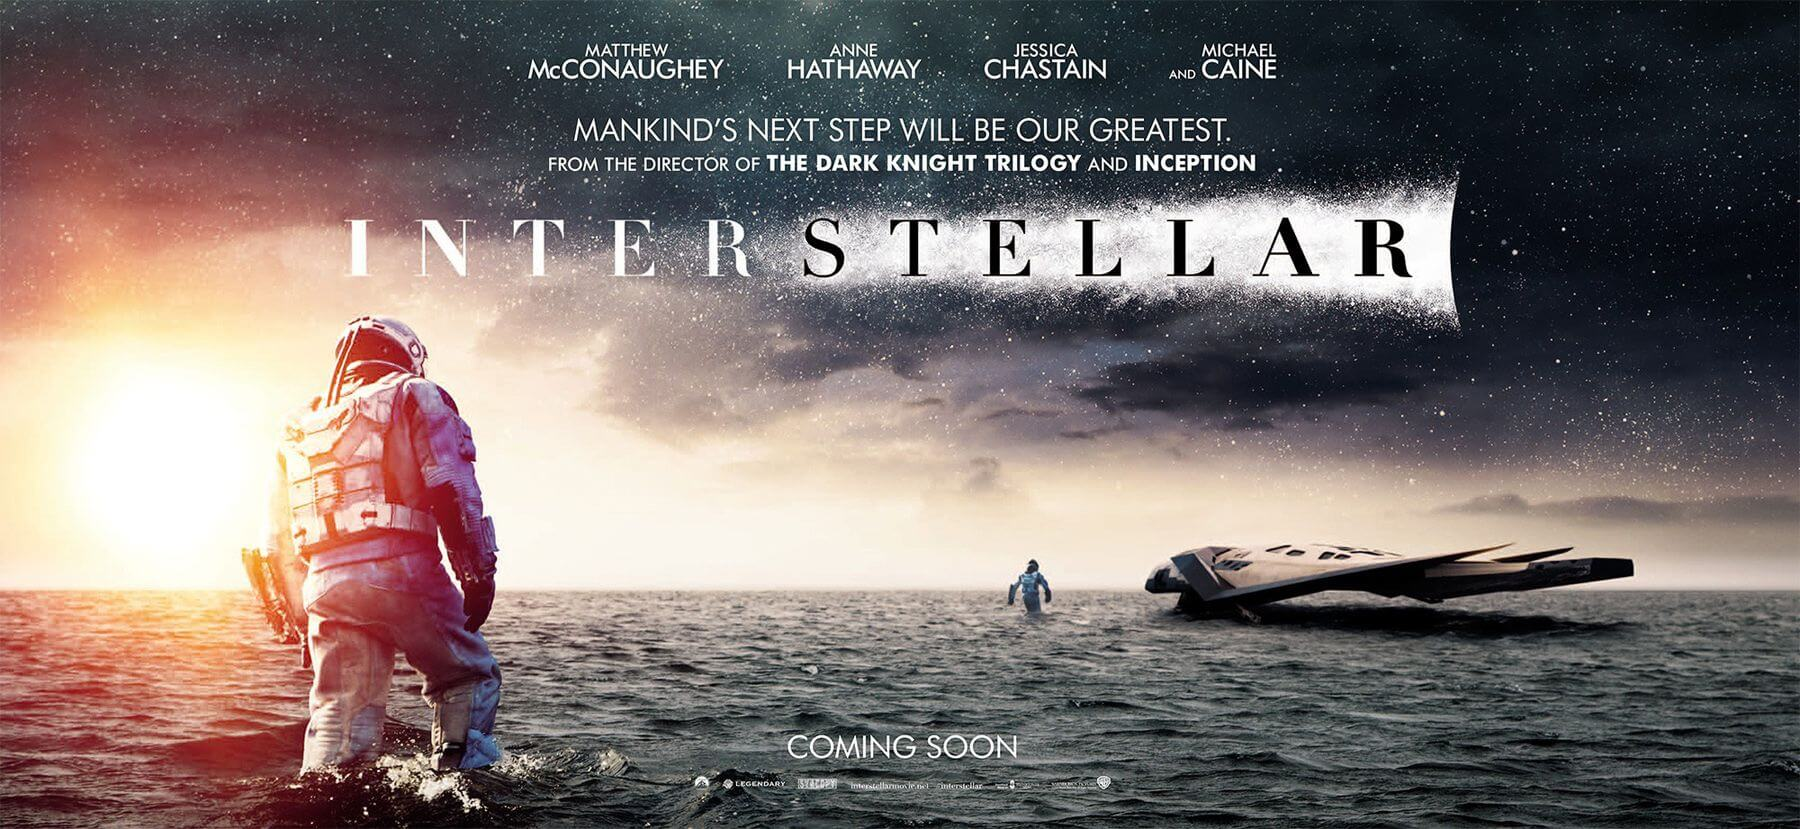 Interstellar (2014) - Christopher Nolan